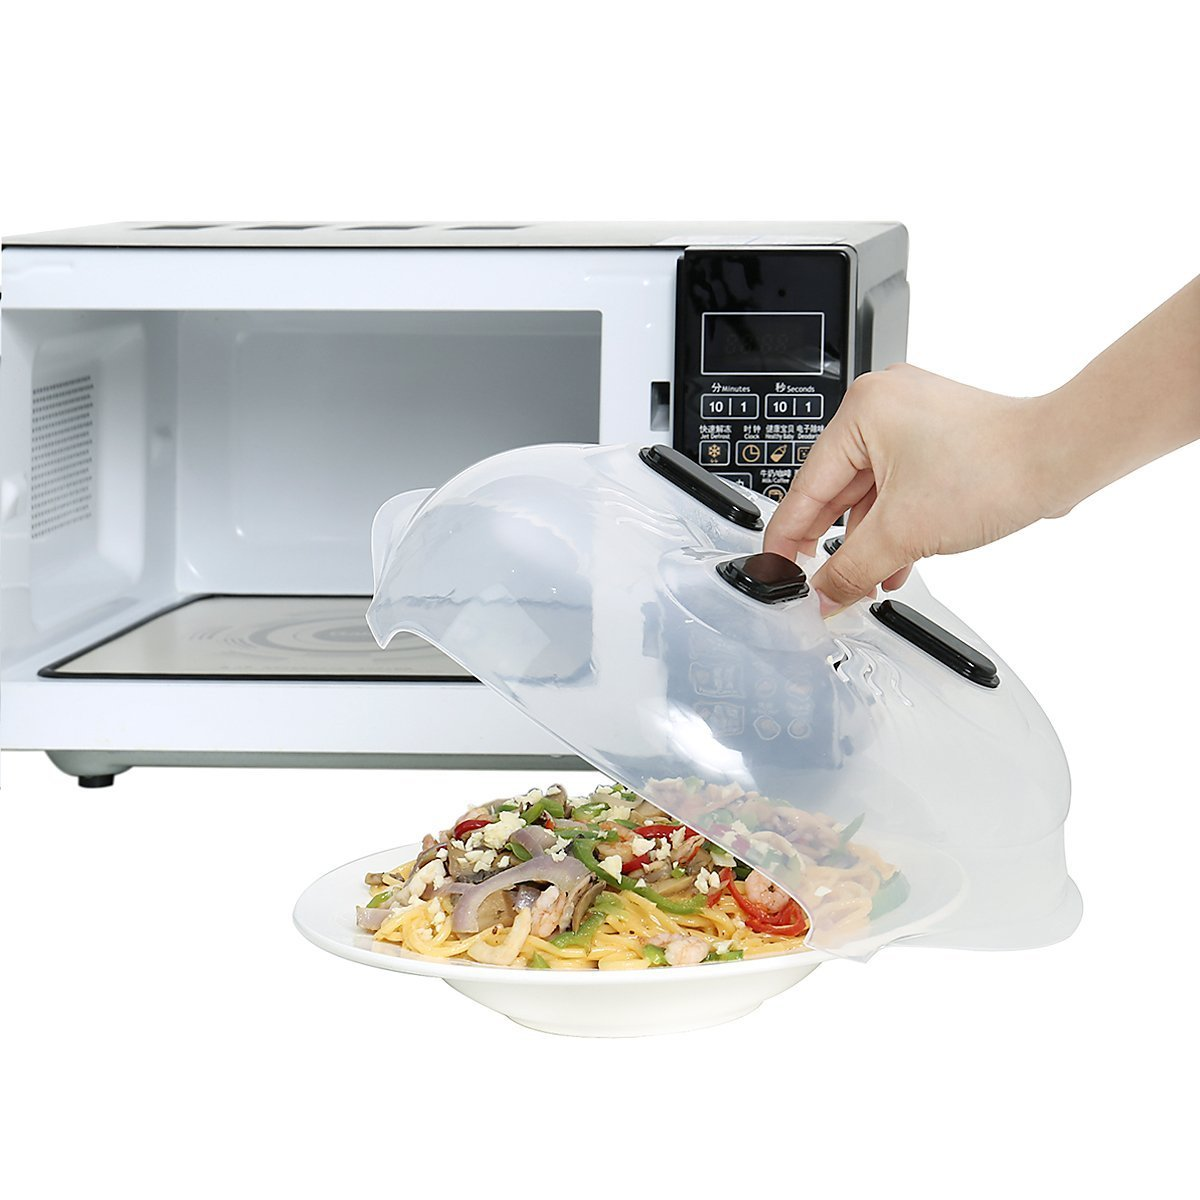 Magnetic Microwave Splatter Cover, Microwave Plate Guard Lid With Steam Vent